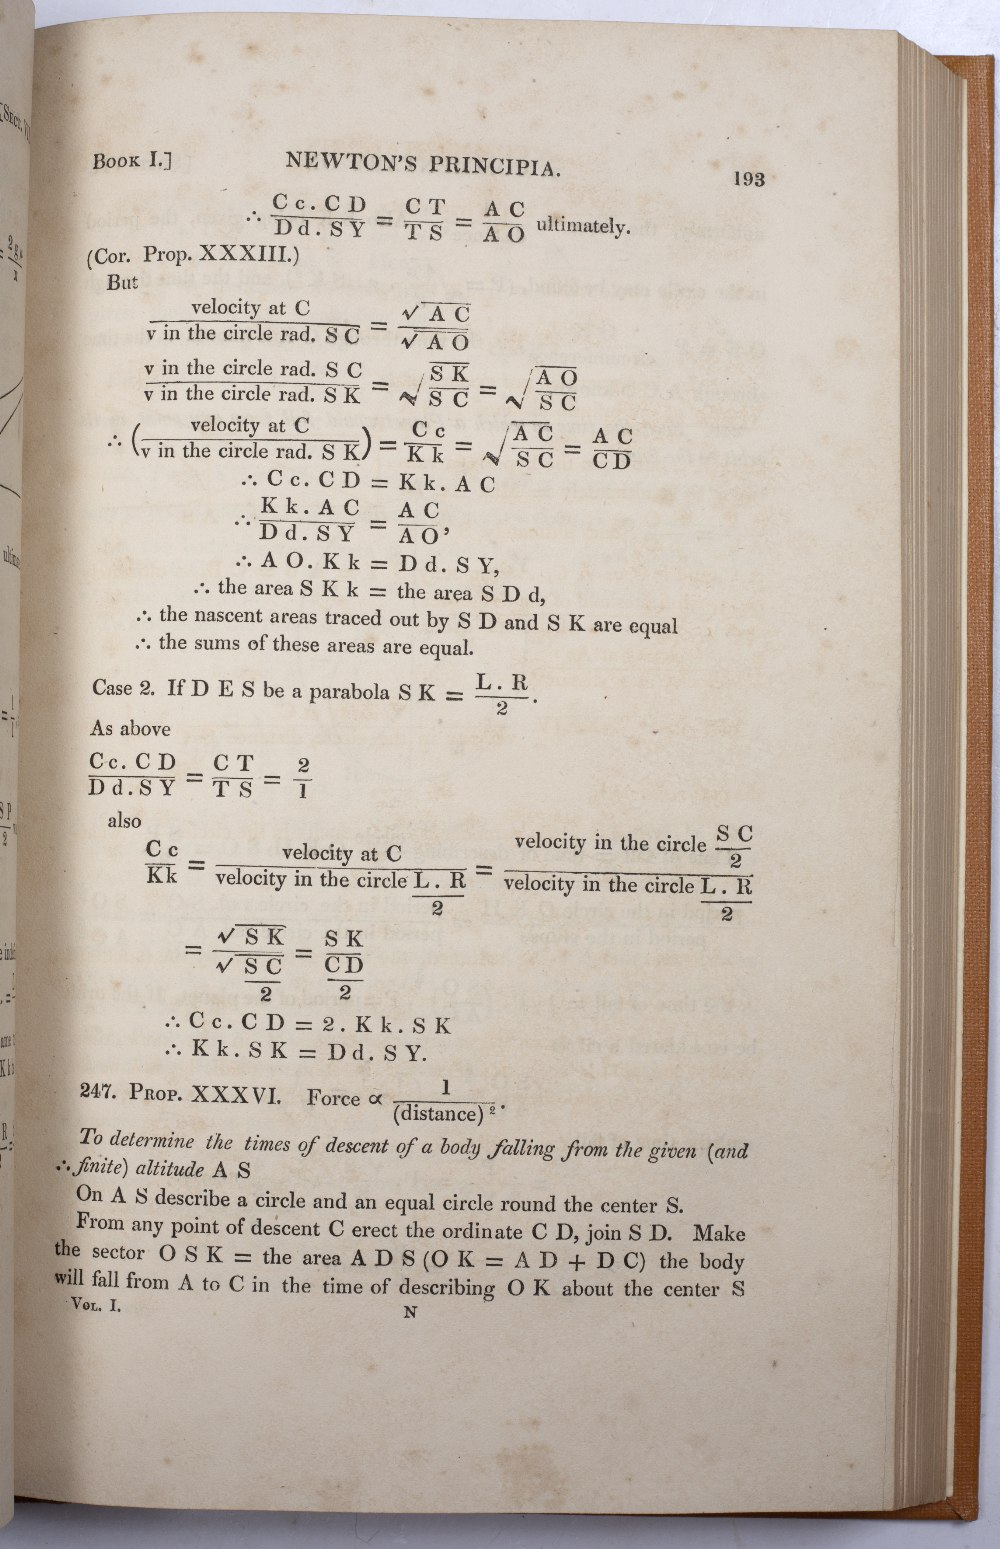 WRIGHT, John Martin Frederick, 'A Commentary on Newton's Principia with a supplementary volume'. - Image 3 of 3